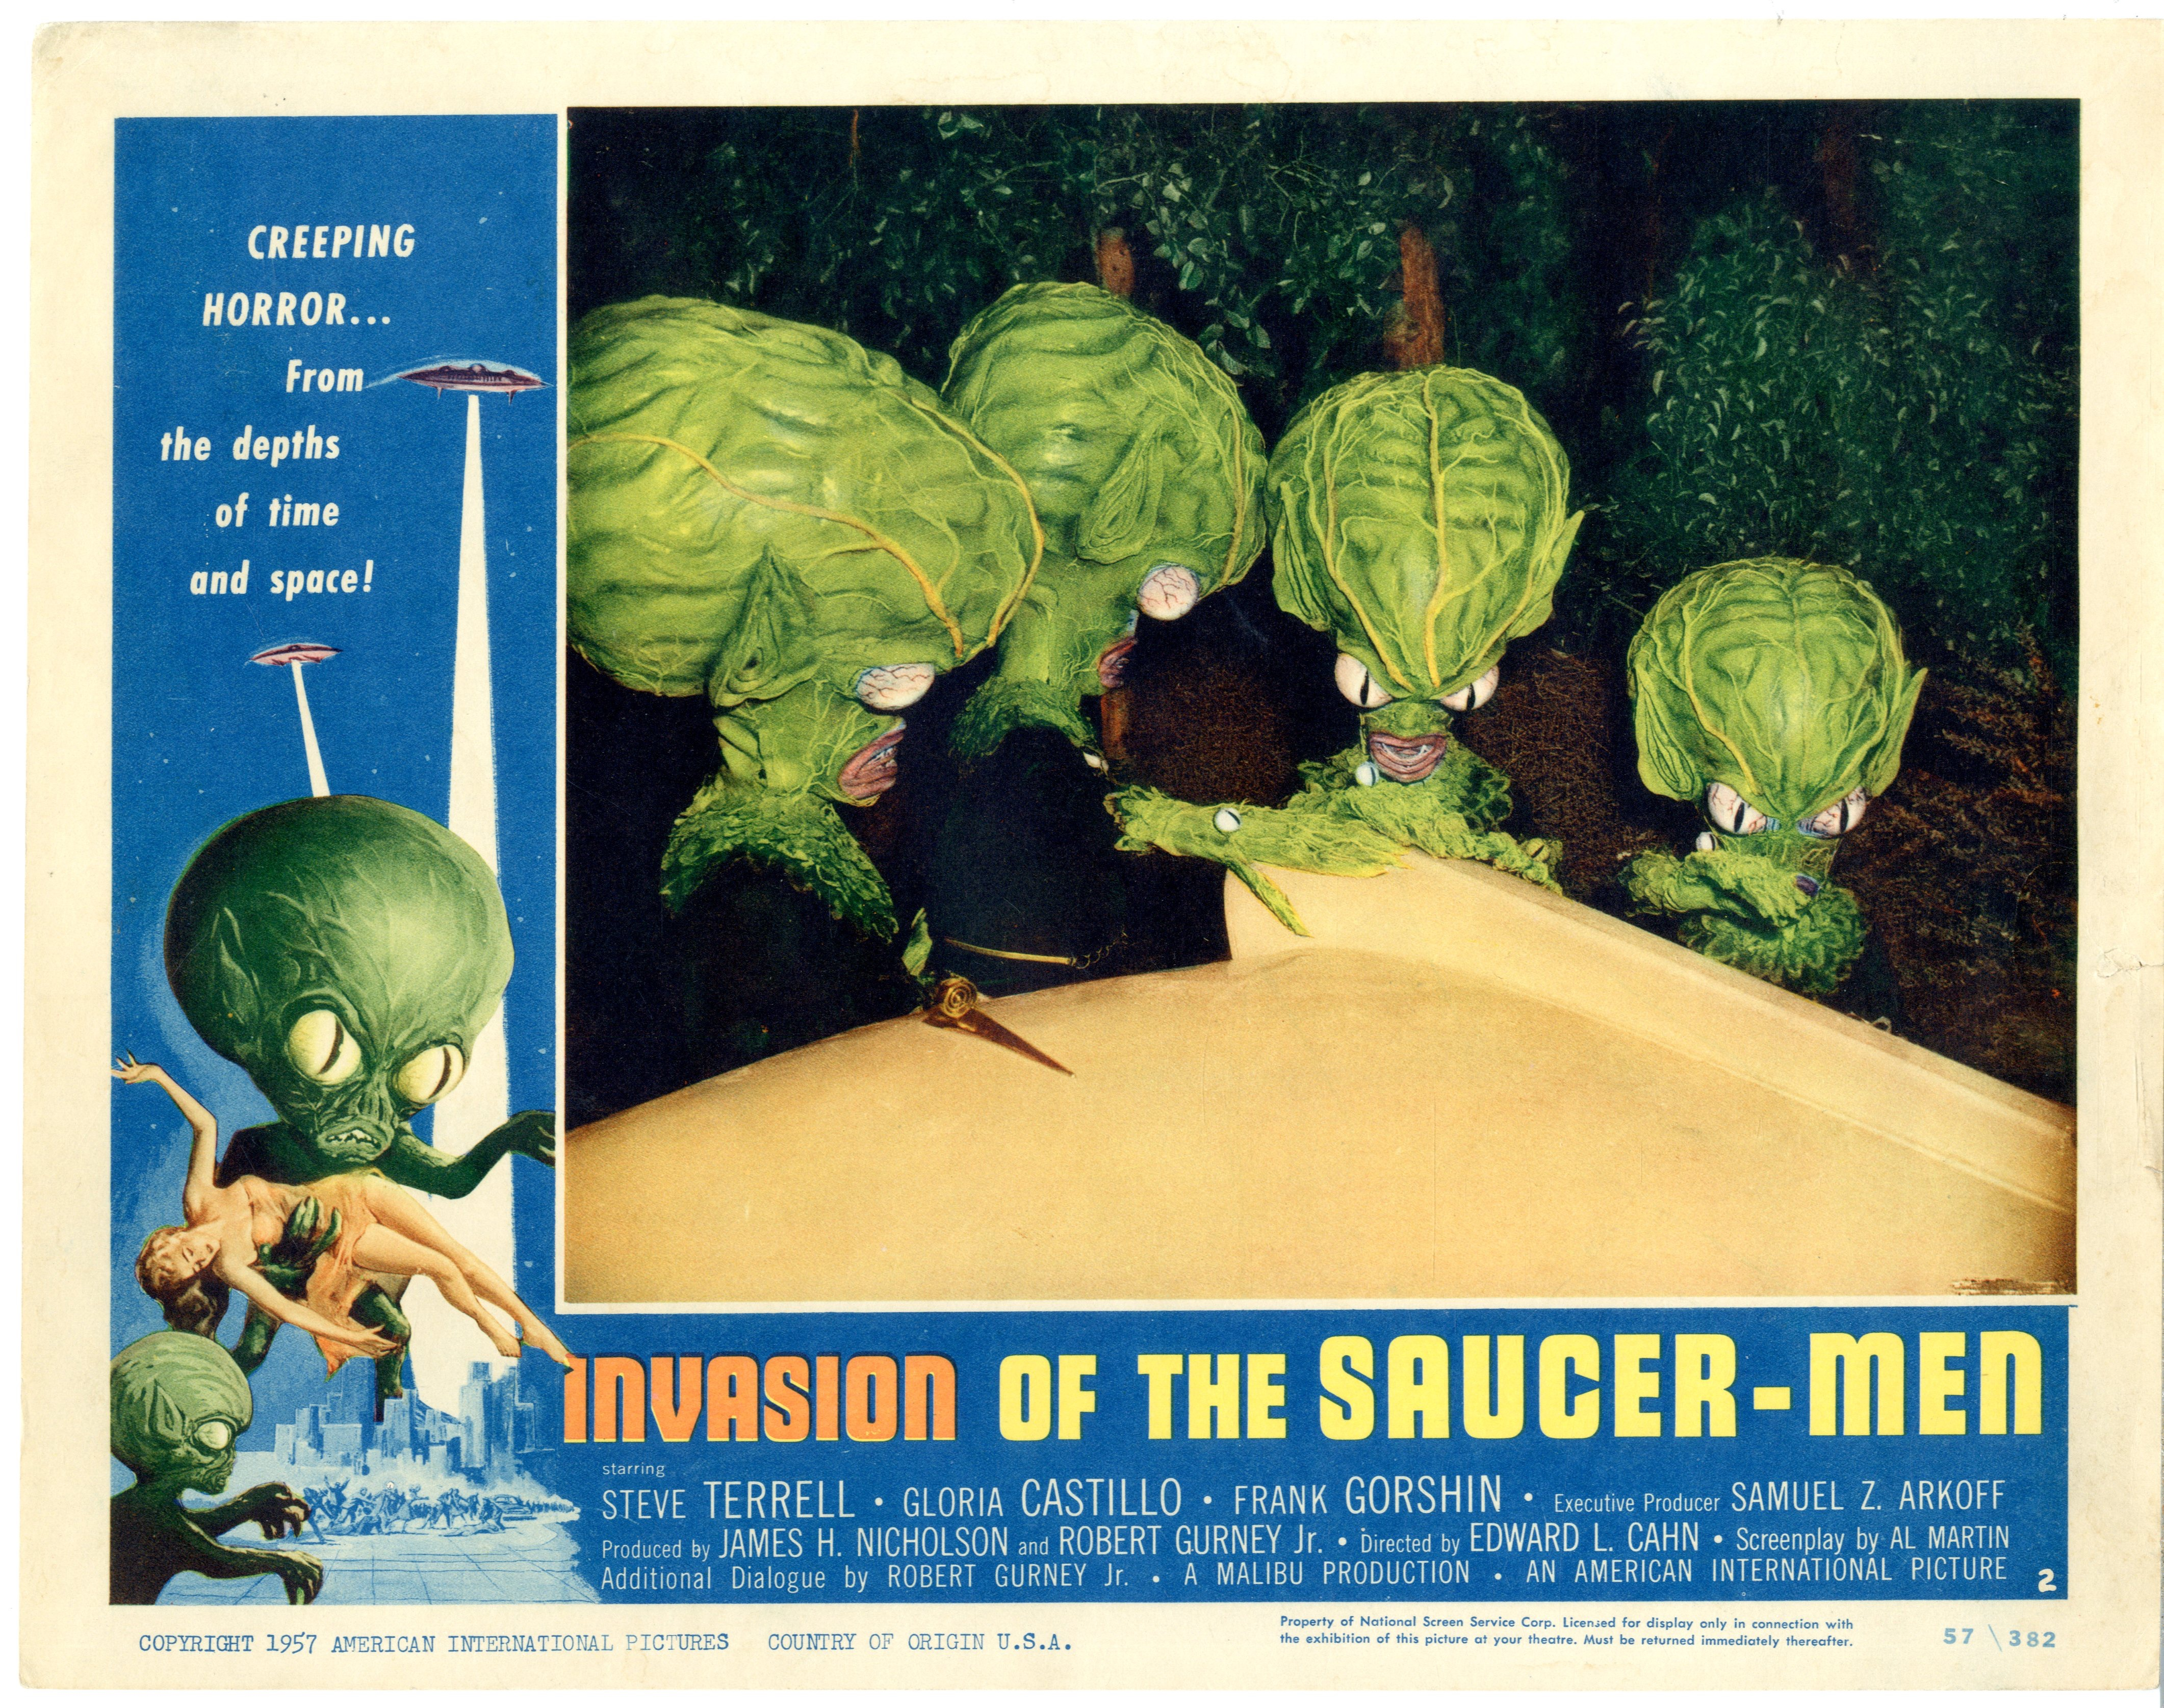 Invasion Of The Saucer-men 1957 - 22004